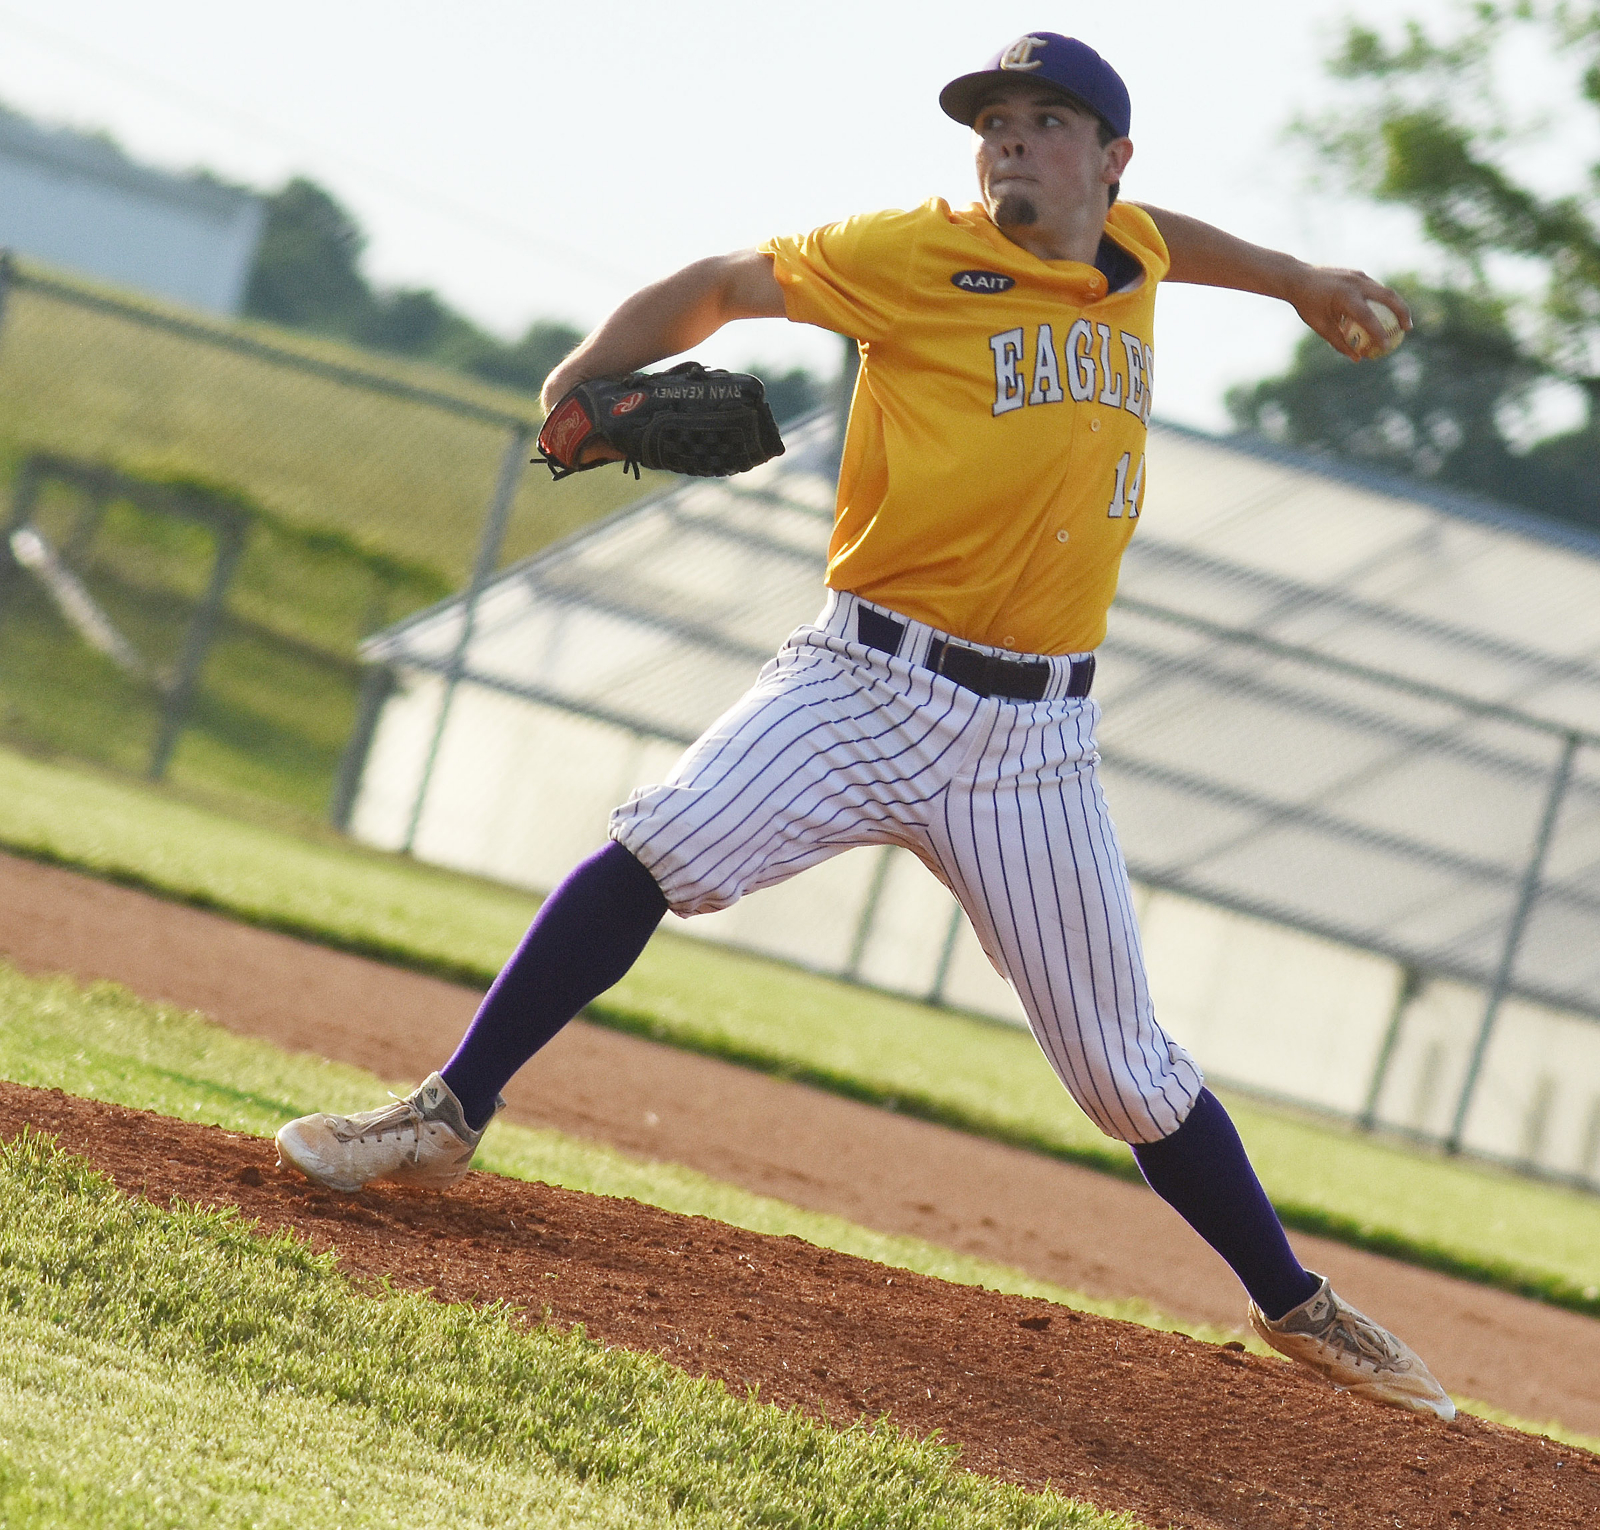 CHS baseball players receive accolades